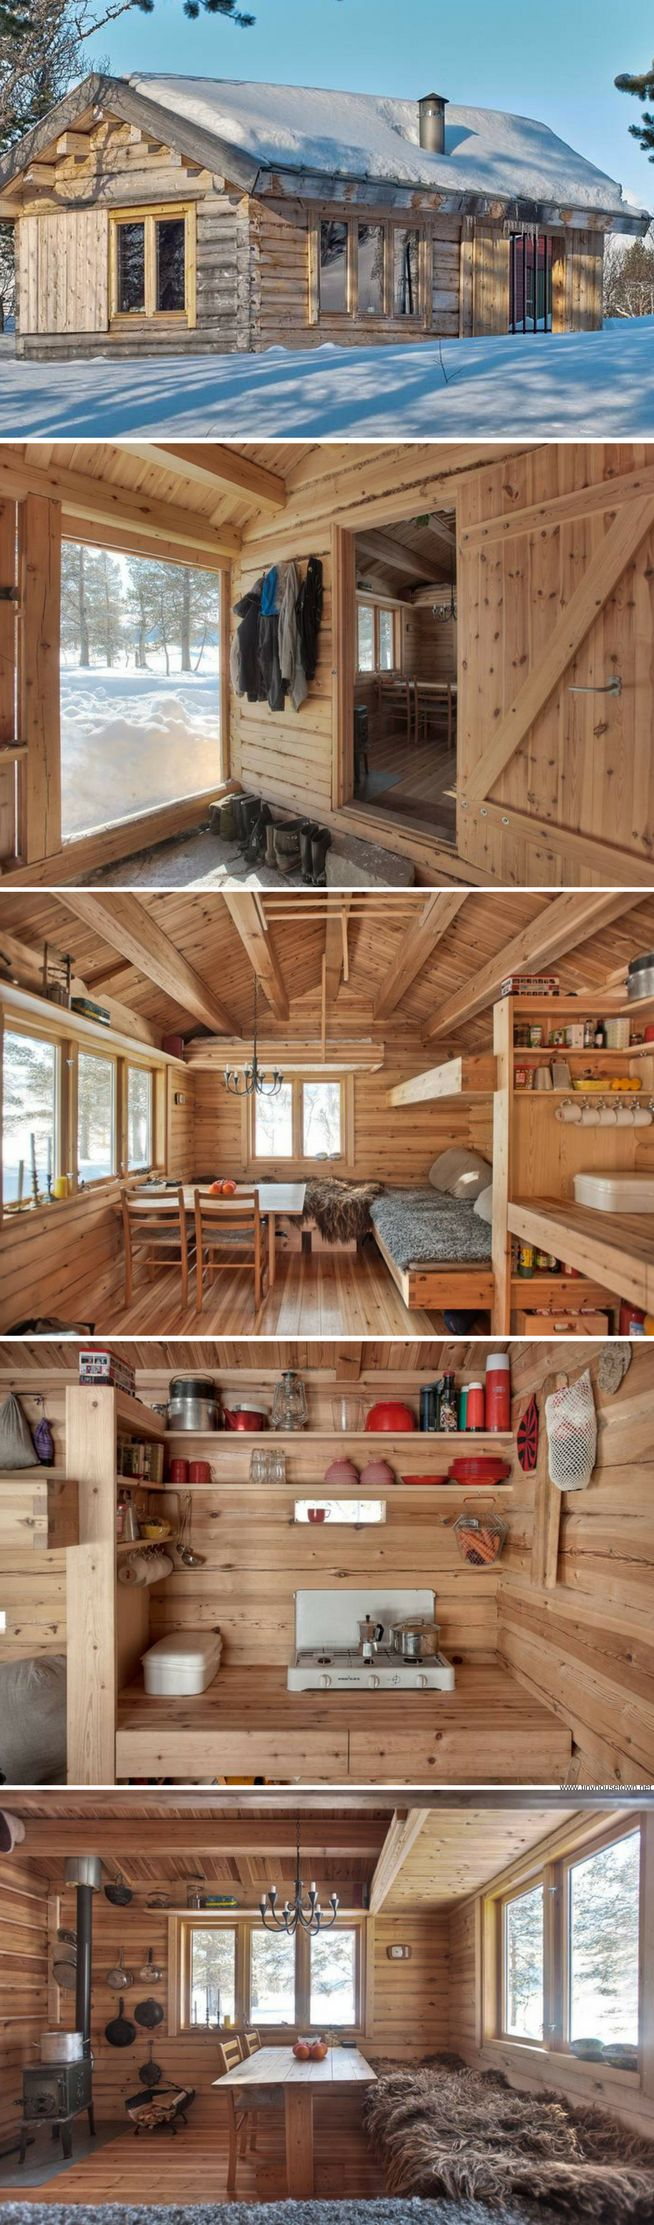 A 118 sq ft Cabin in Norway : tinyhouetown